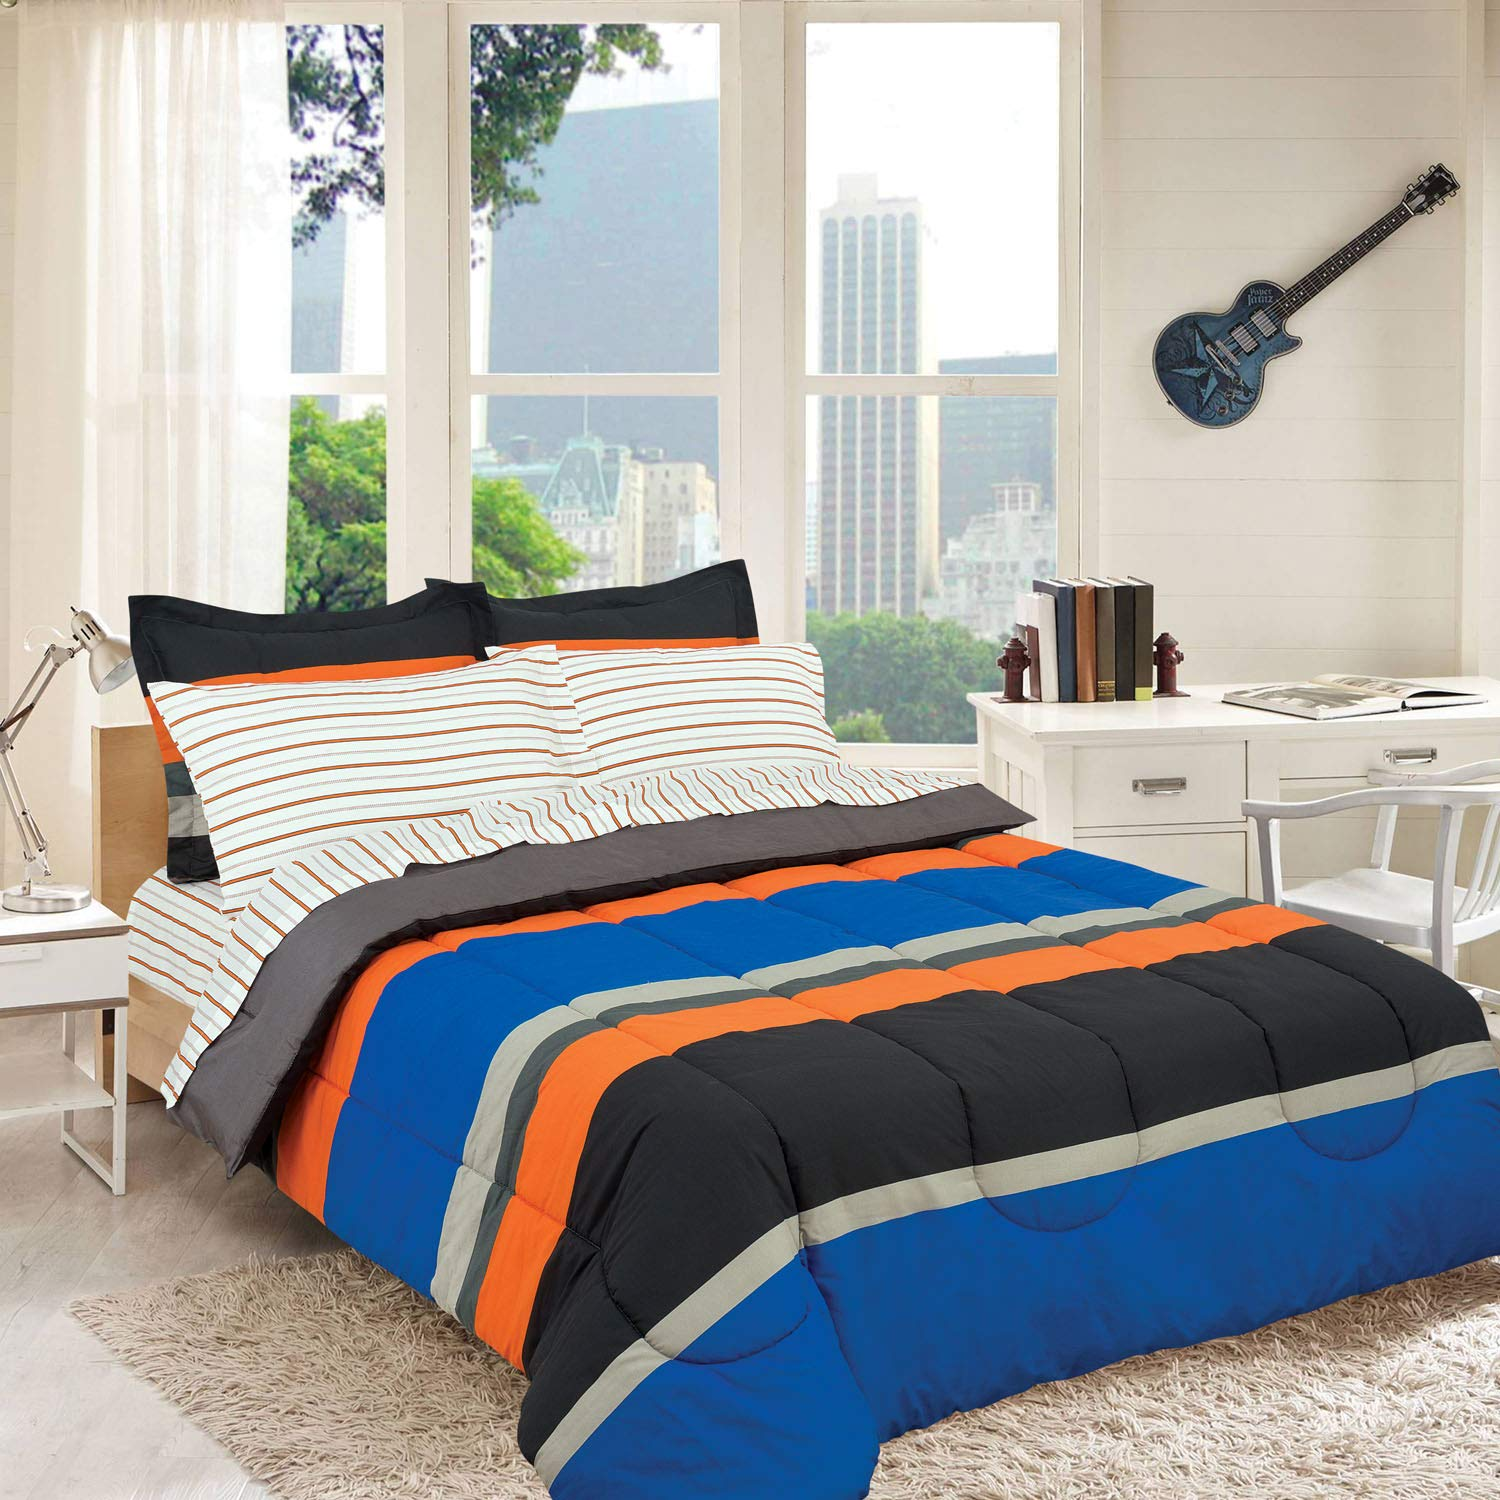 Royale Linens Campus Colors Rugby Stripe Orange Blue and Grey, Reversible, Full, Complete Set